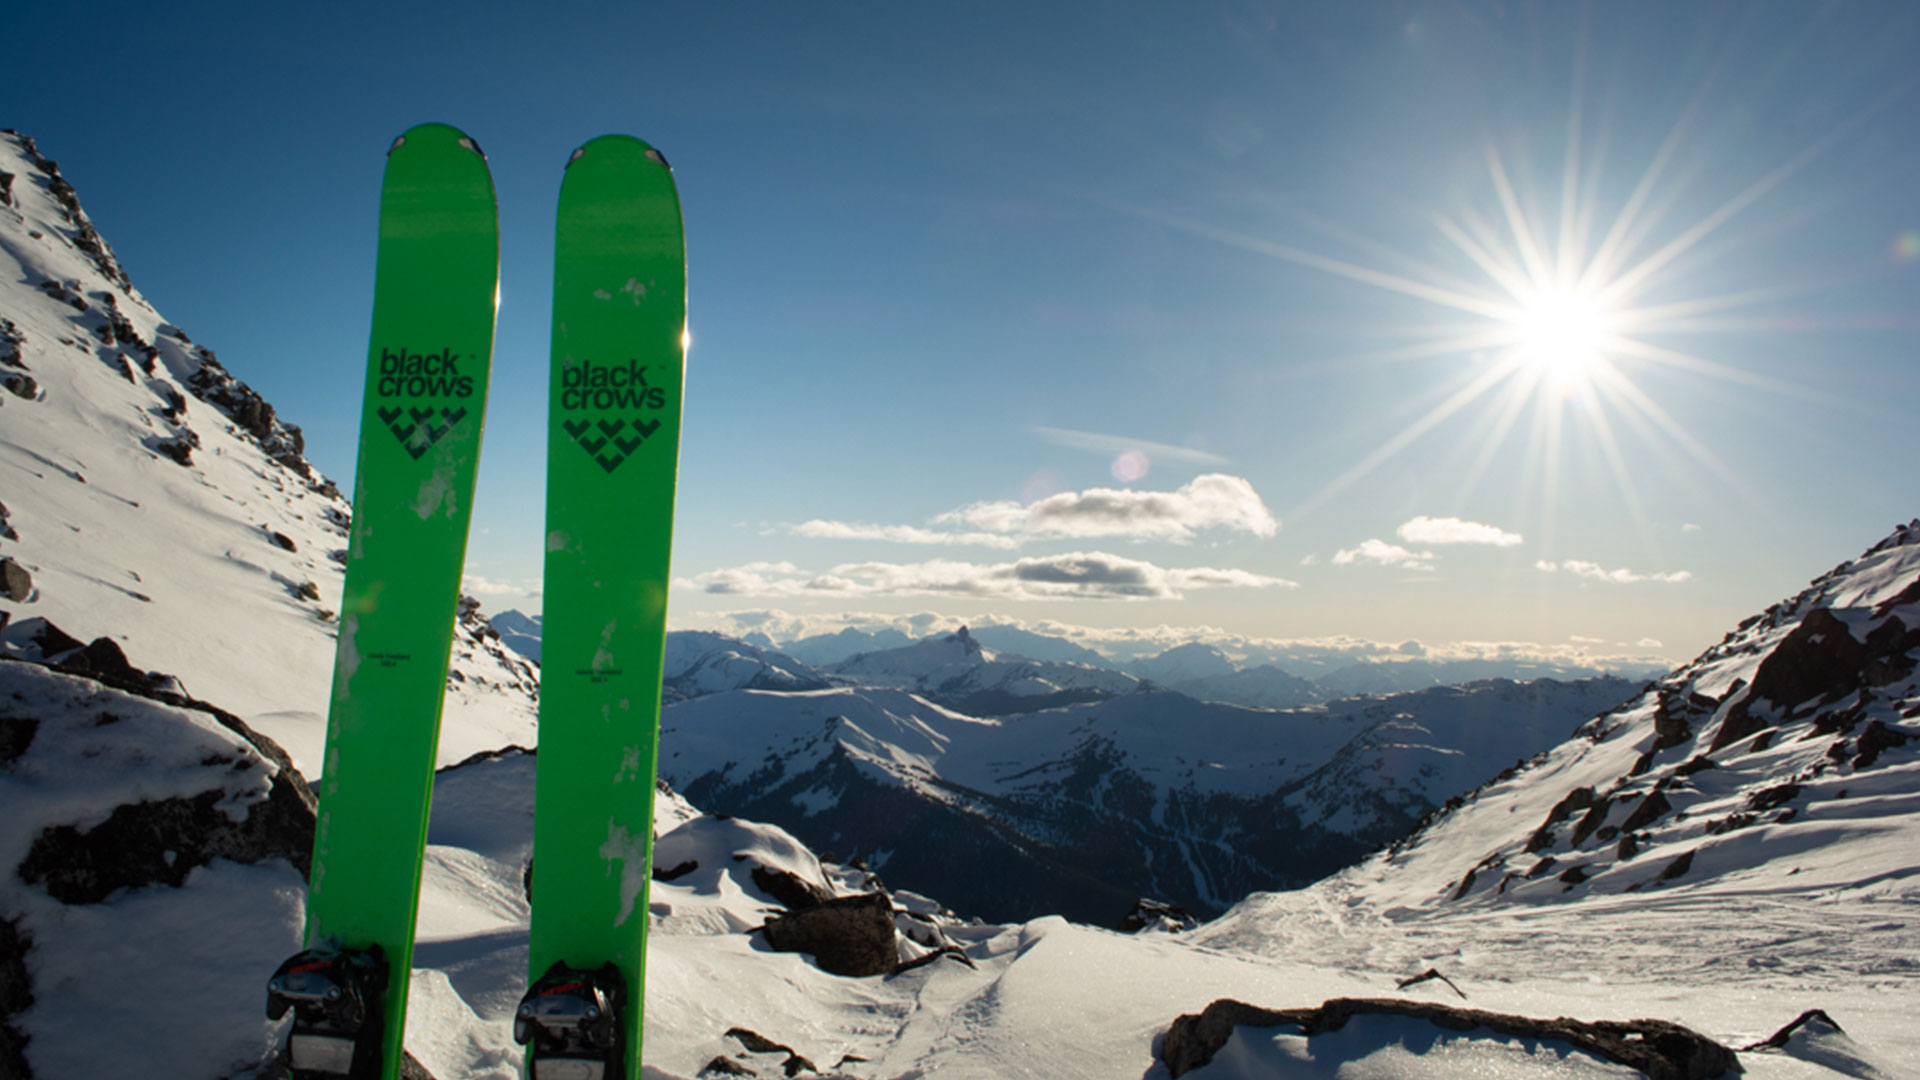 Winter holiday in Whistler, showing the views of Whistler Mountain from Blackcomb.